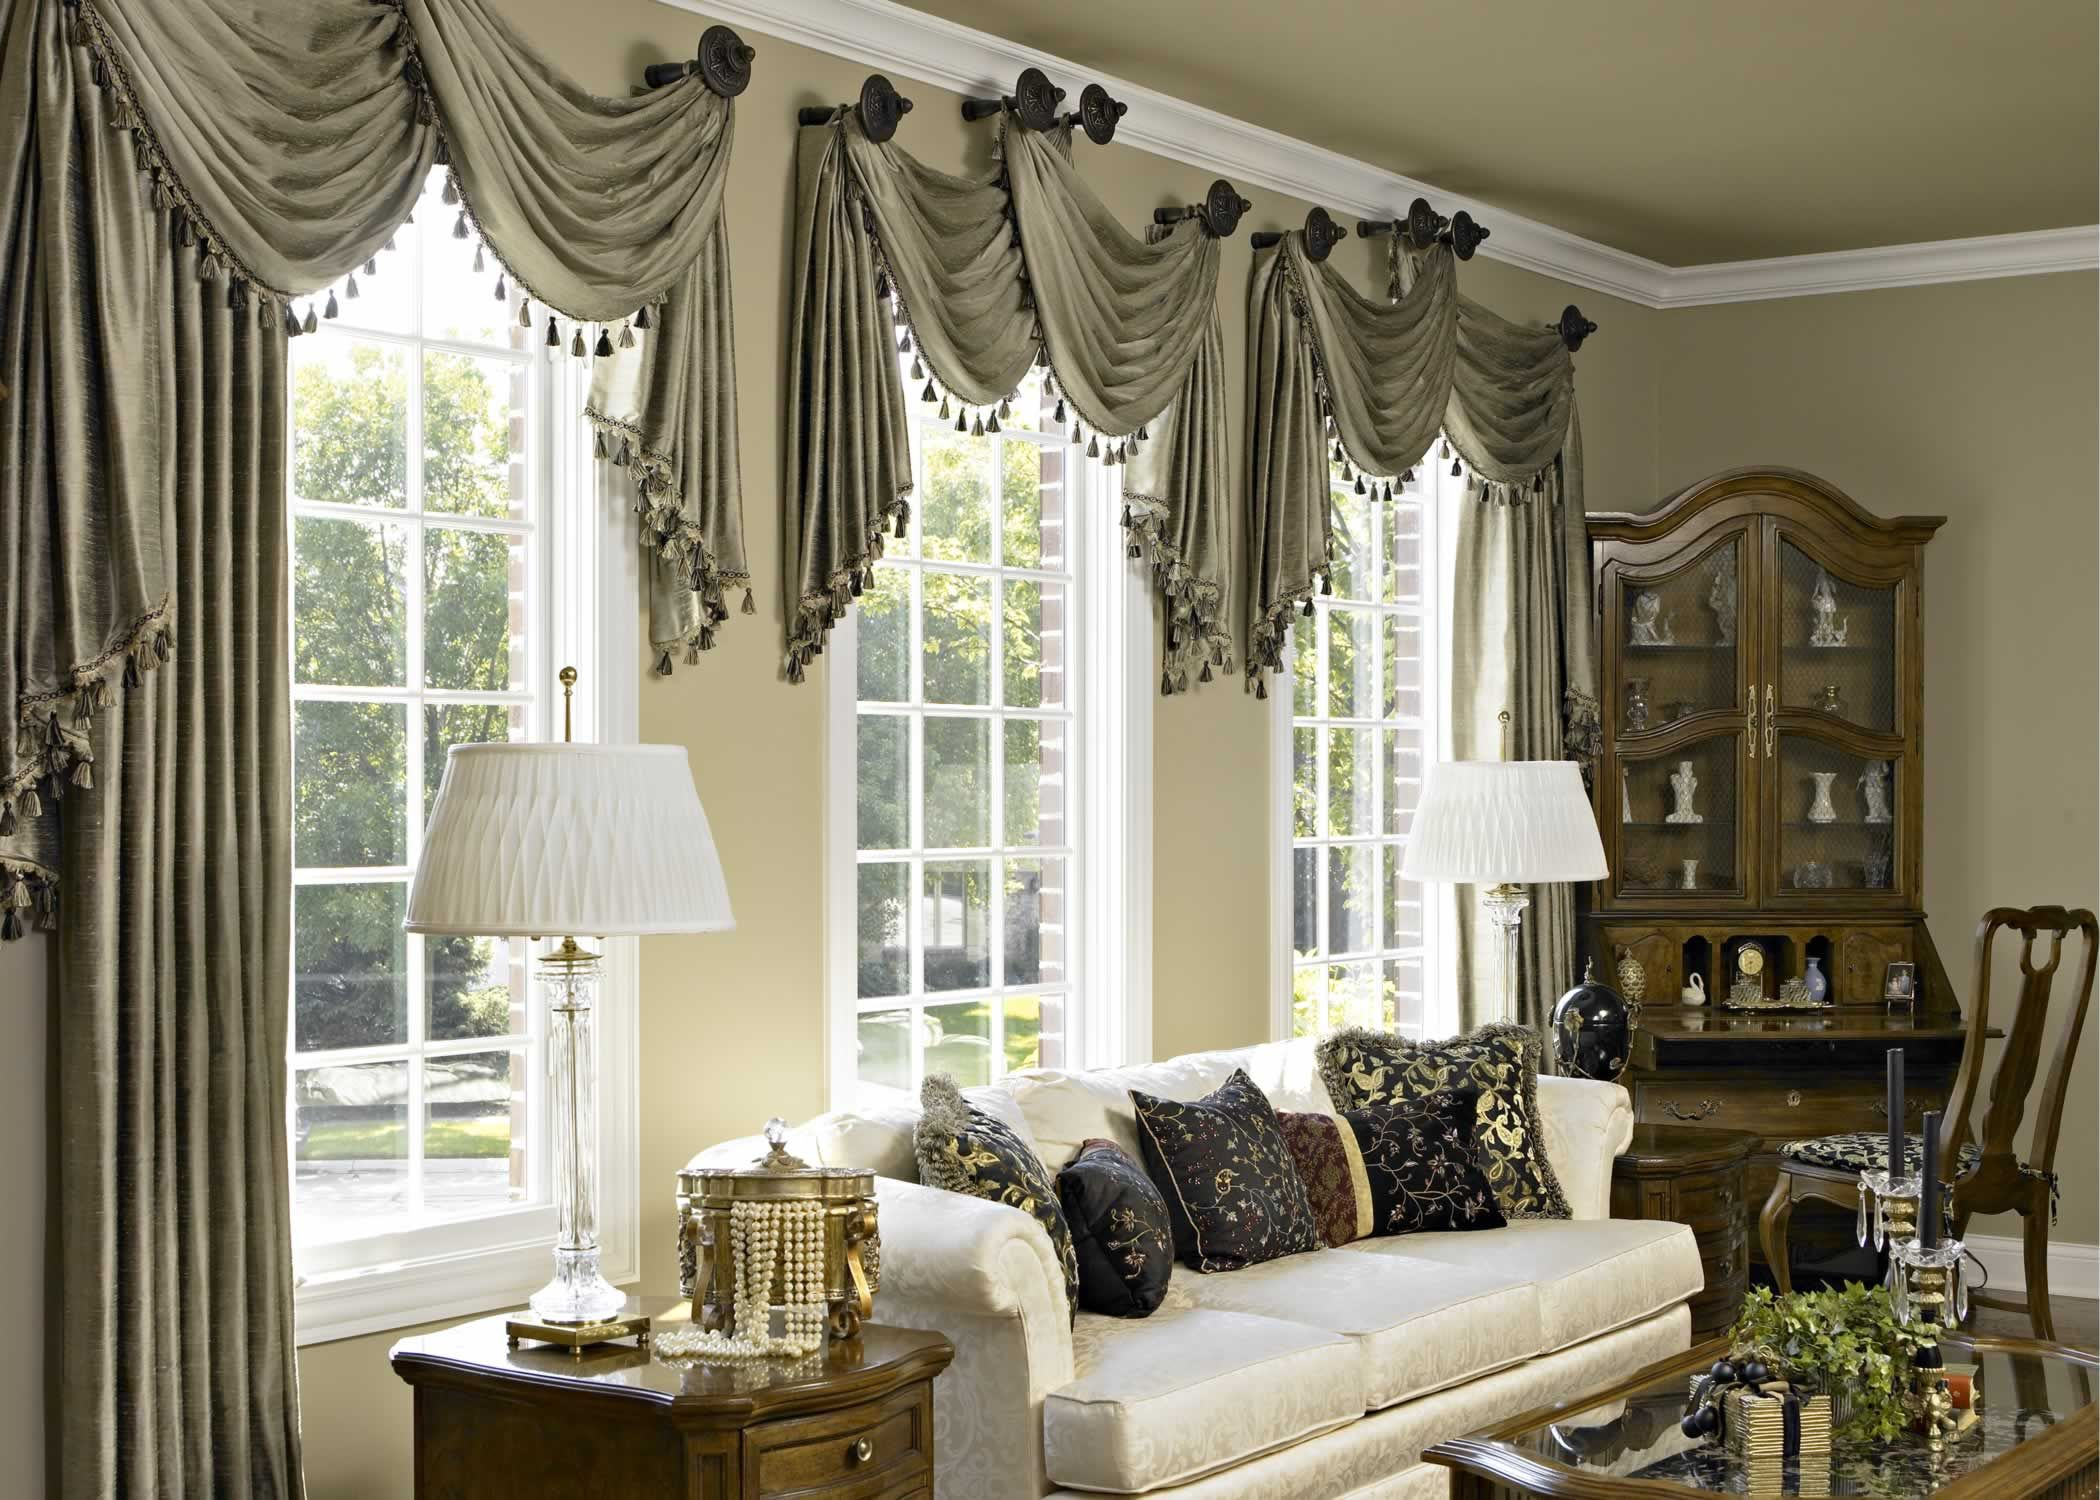 Accesories decors gray fabric scarf over valance as window treatment for spring living room window treatment ideas added white couch and corner cabinetry